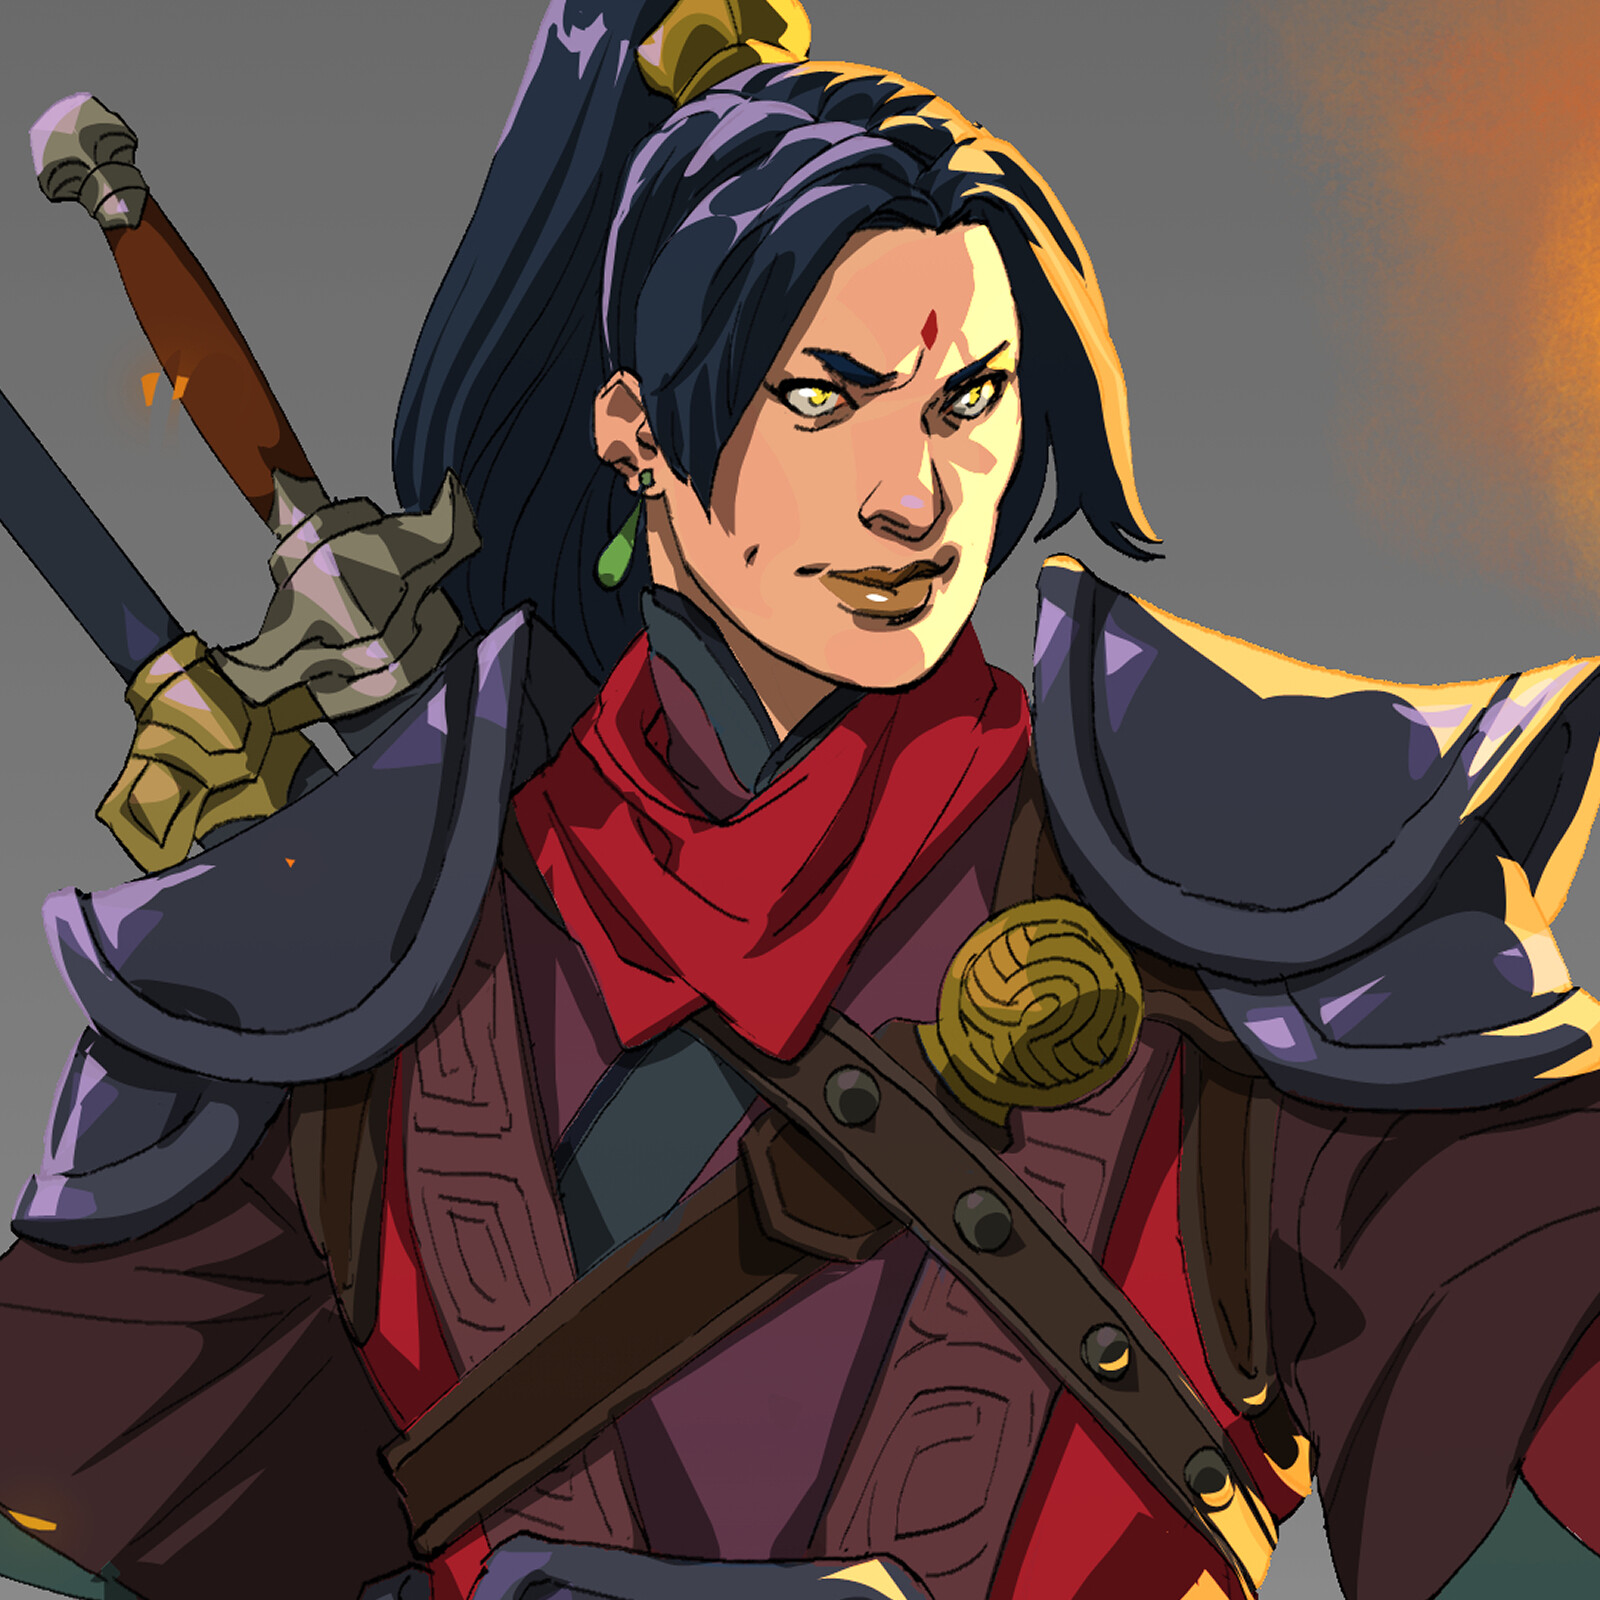 Suyin, the magic specialist from the school of the crane who pioneered the use of compounded signs in unarmed combat.